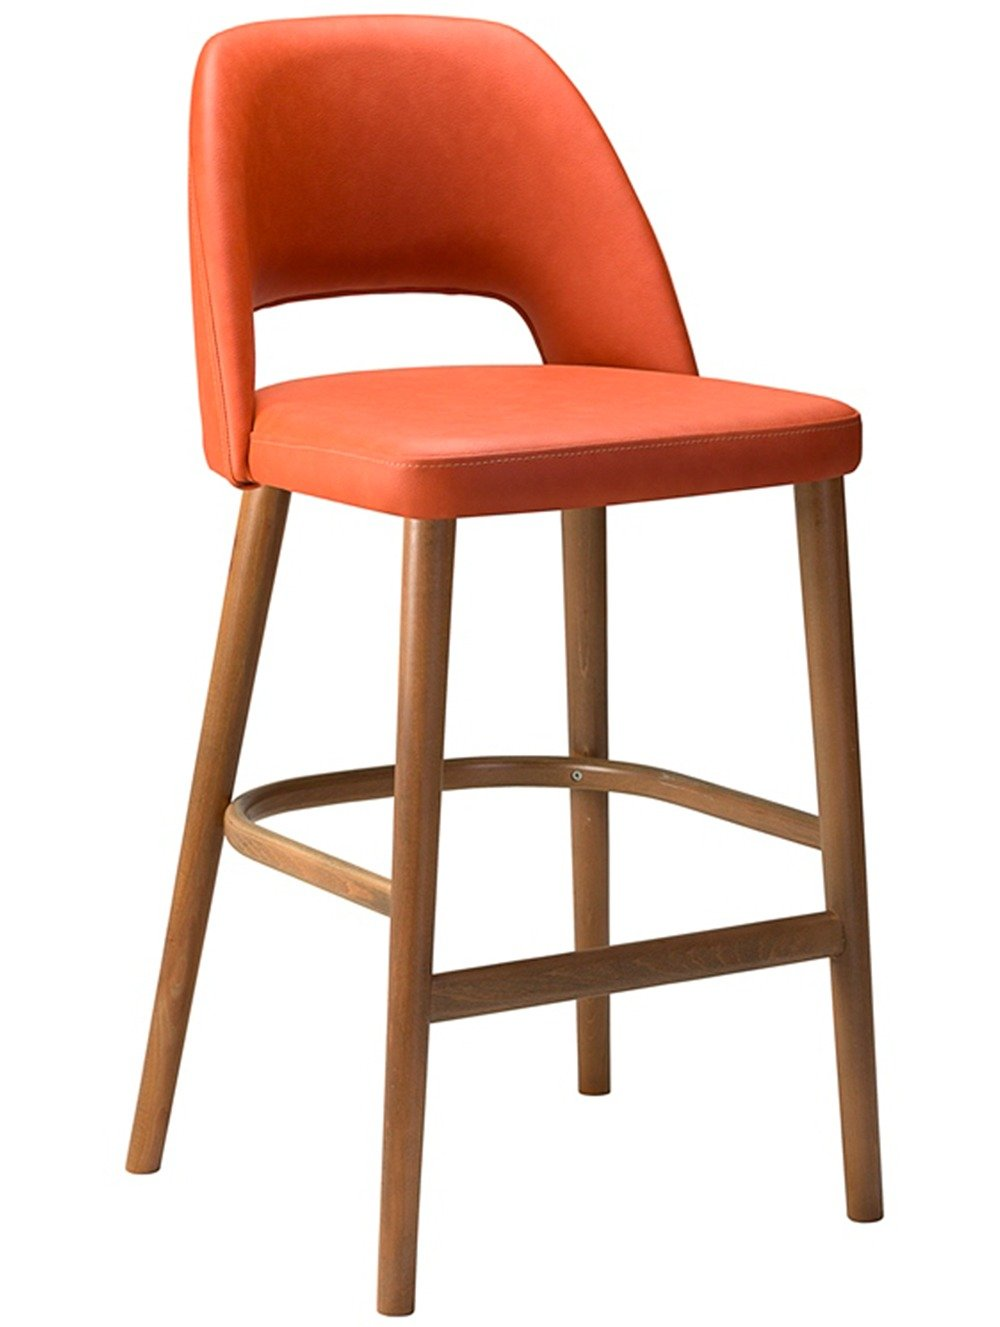 Calm CO High Stool